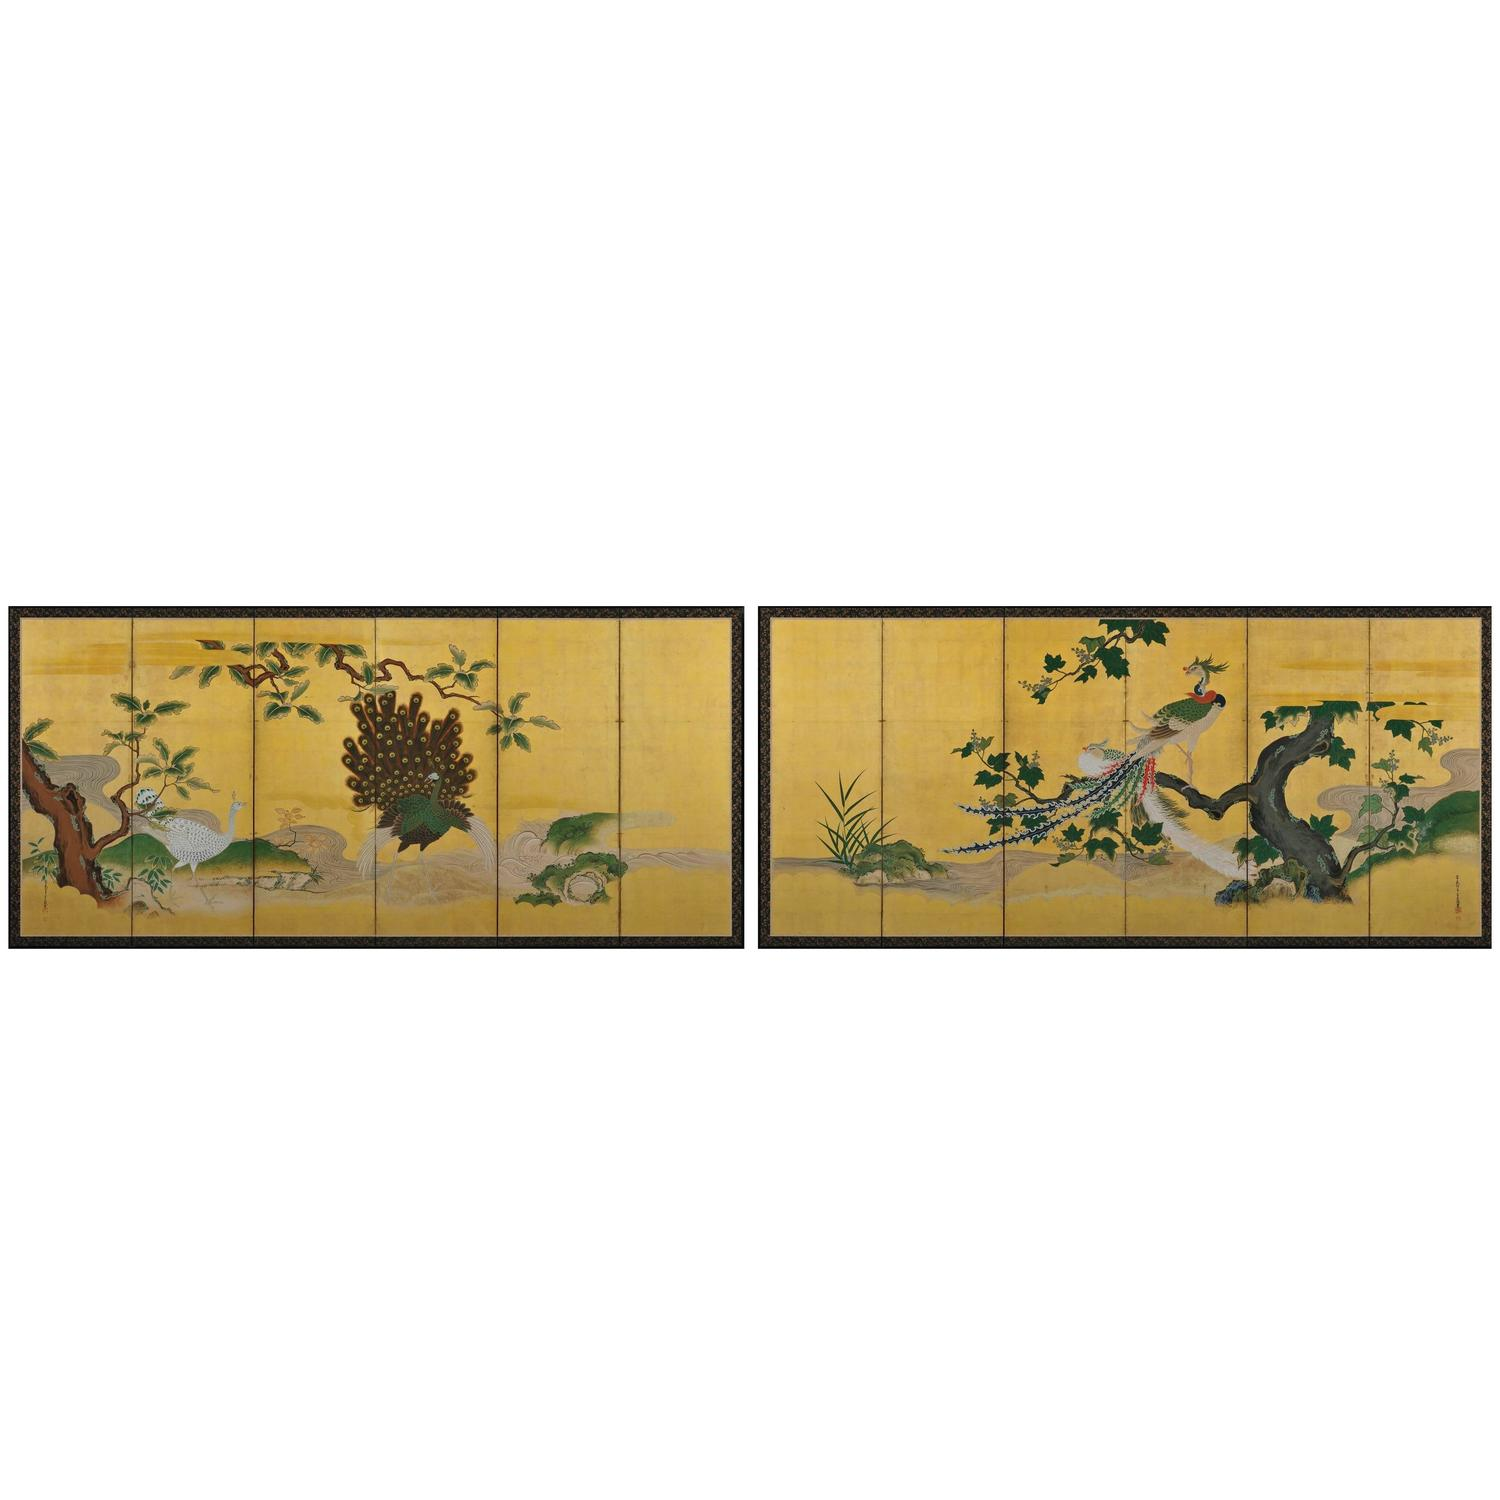 Antique japanese screens for sale - Tsunetake Yotei 18th Century Japanese Folding Screen Pair